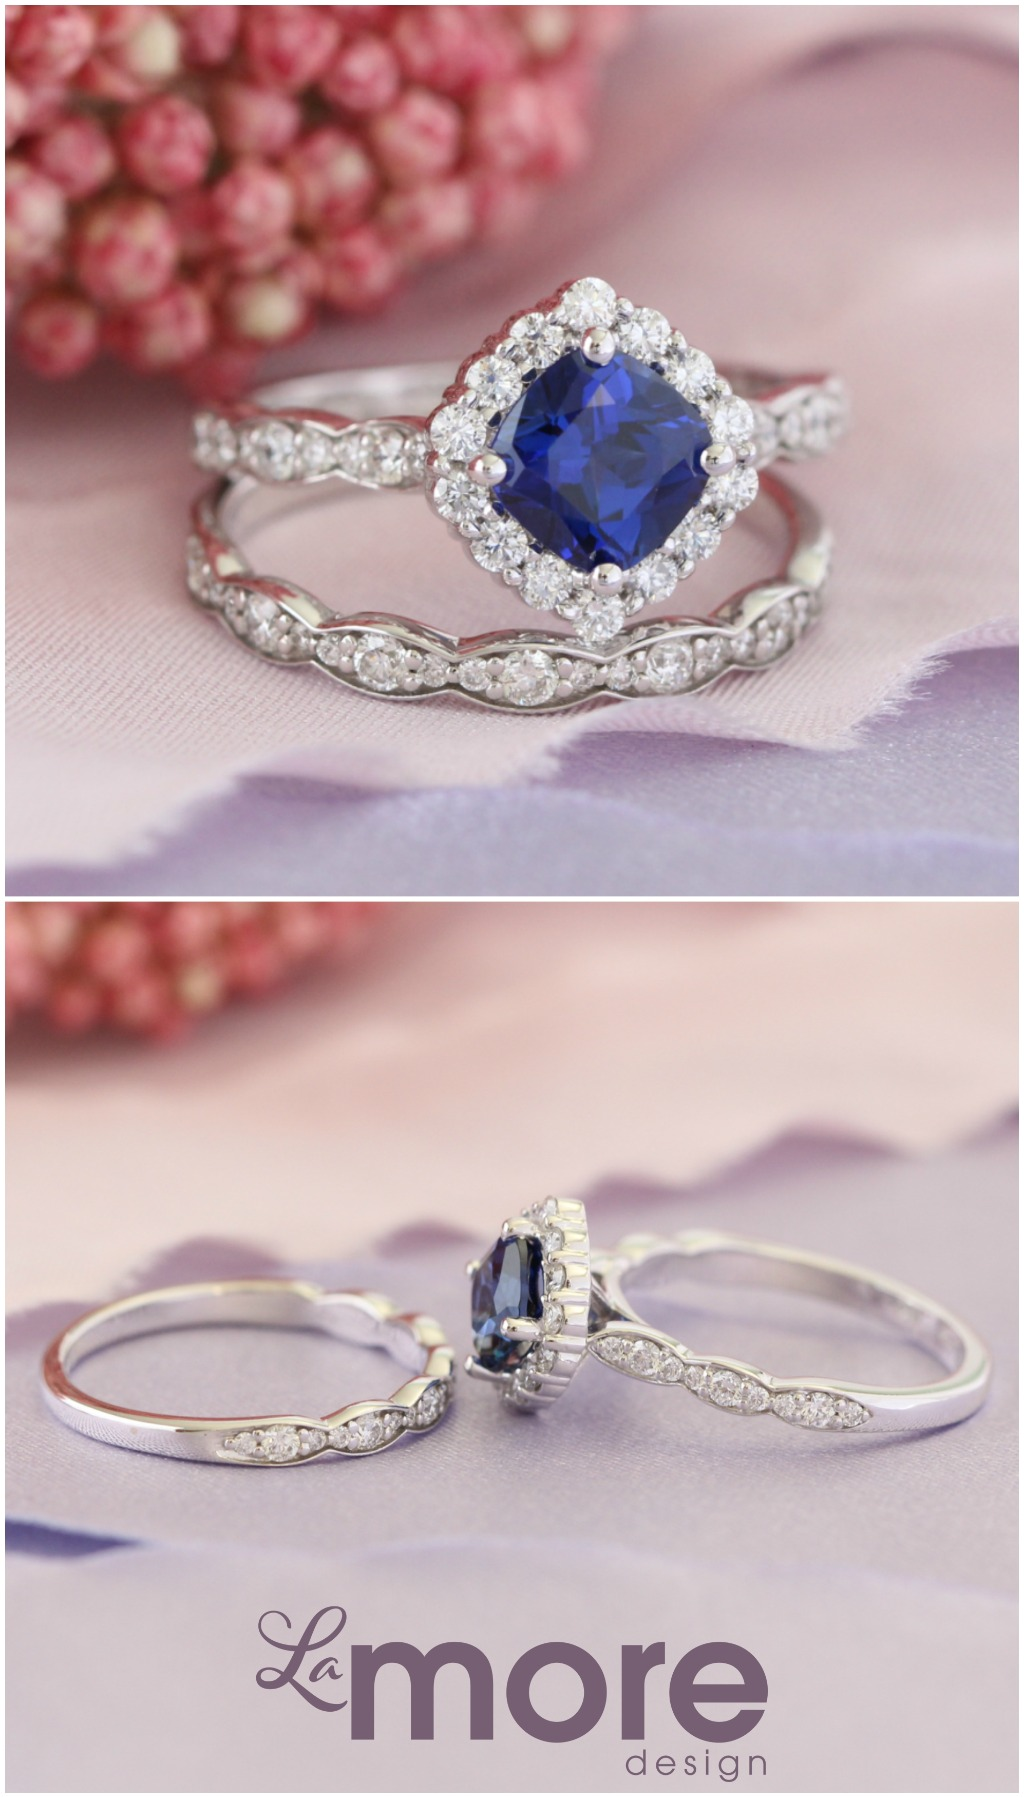 Breathtaking sapphire bridal set of a cushion cut conflict free cultured blue sapphire ring in 14k white gold halo diamond ring setting